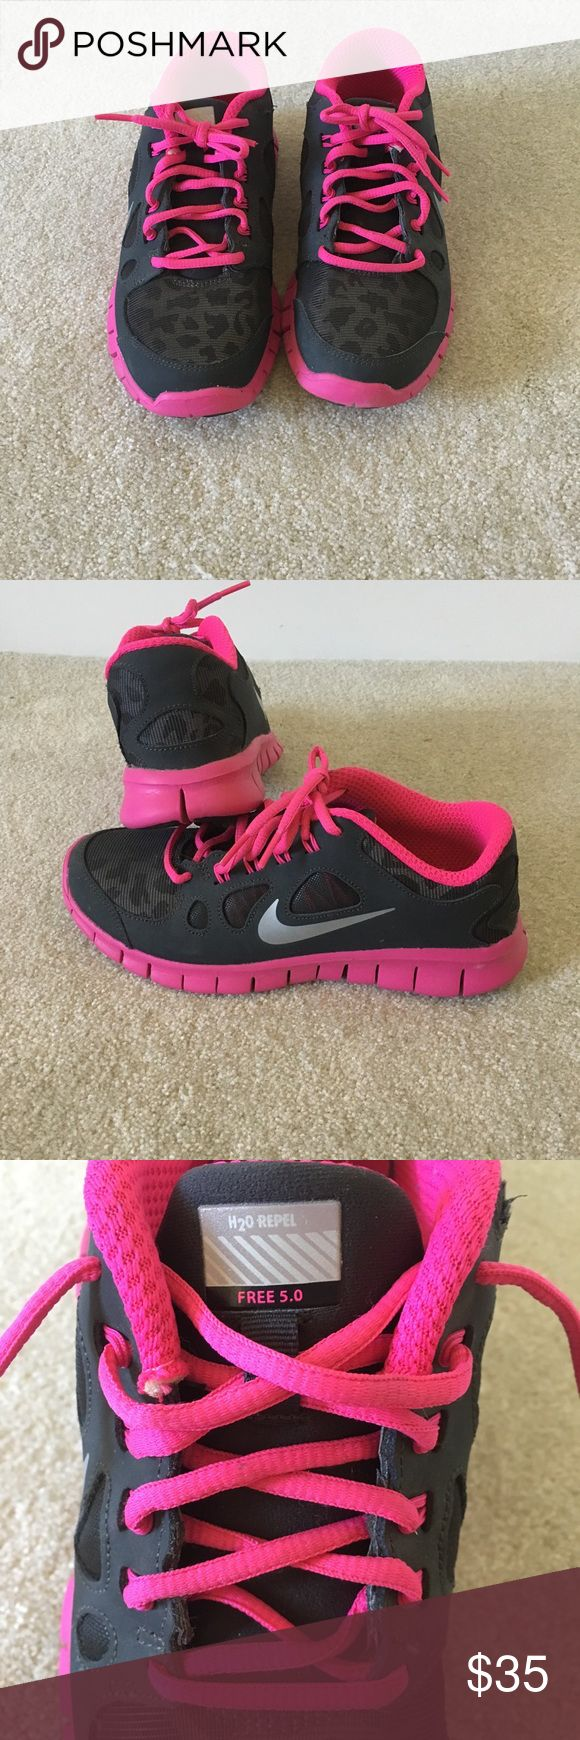 Girls Nike Free 5.0 with H2O Repel Girls Nike Free 5.0 running shoe with H2O Repel.  Reflective, leopard patterned charcoal grey with pink & black accents.  Worn just a couple of times, great condition.  Size is 7 Youth. Nike Shoes Sneakers